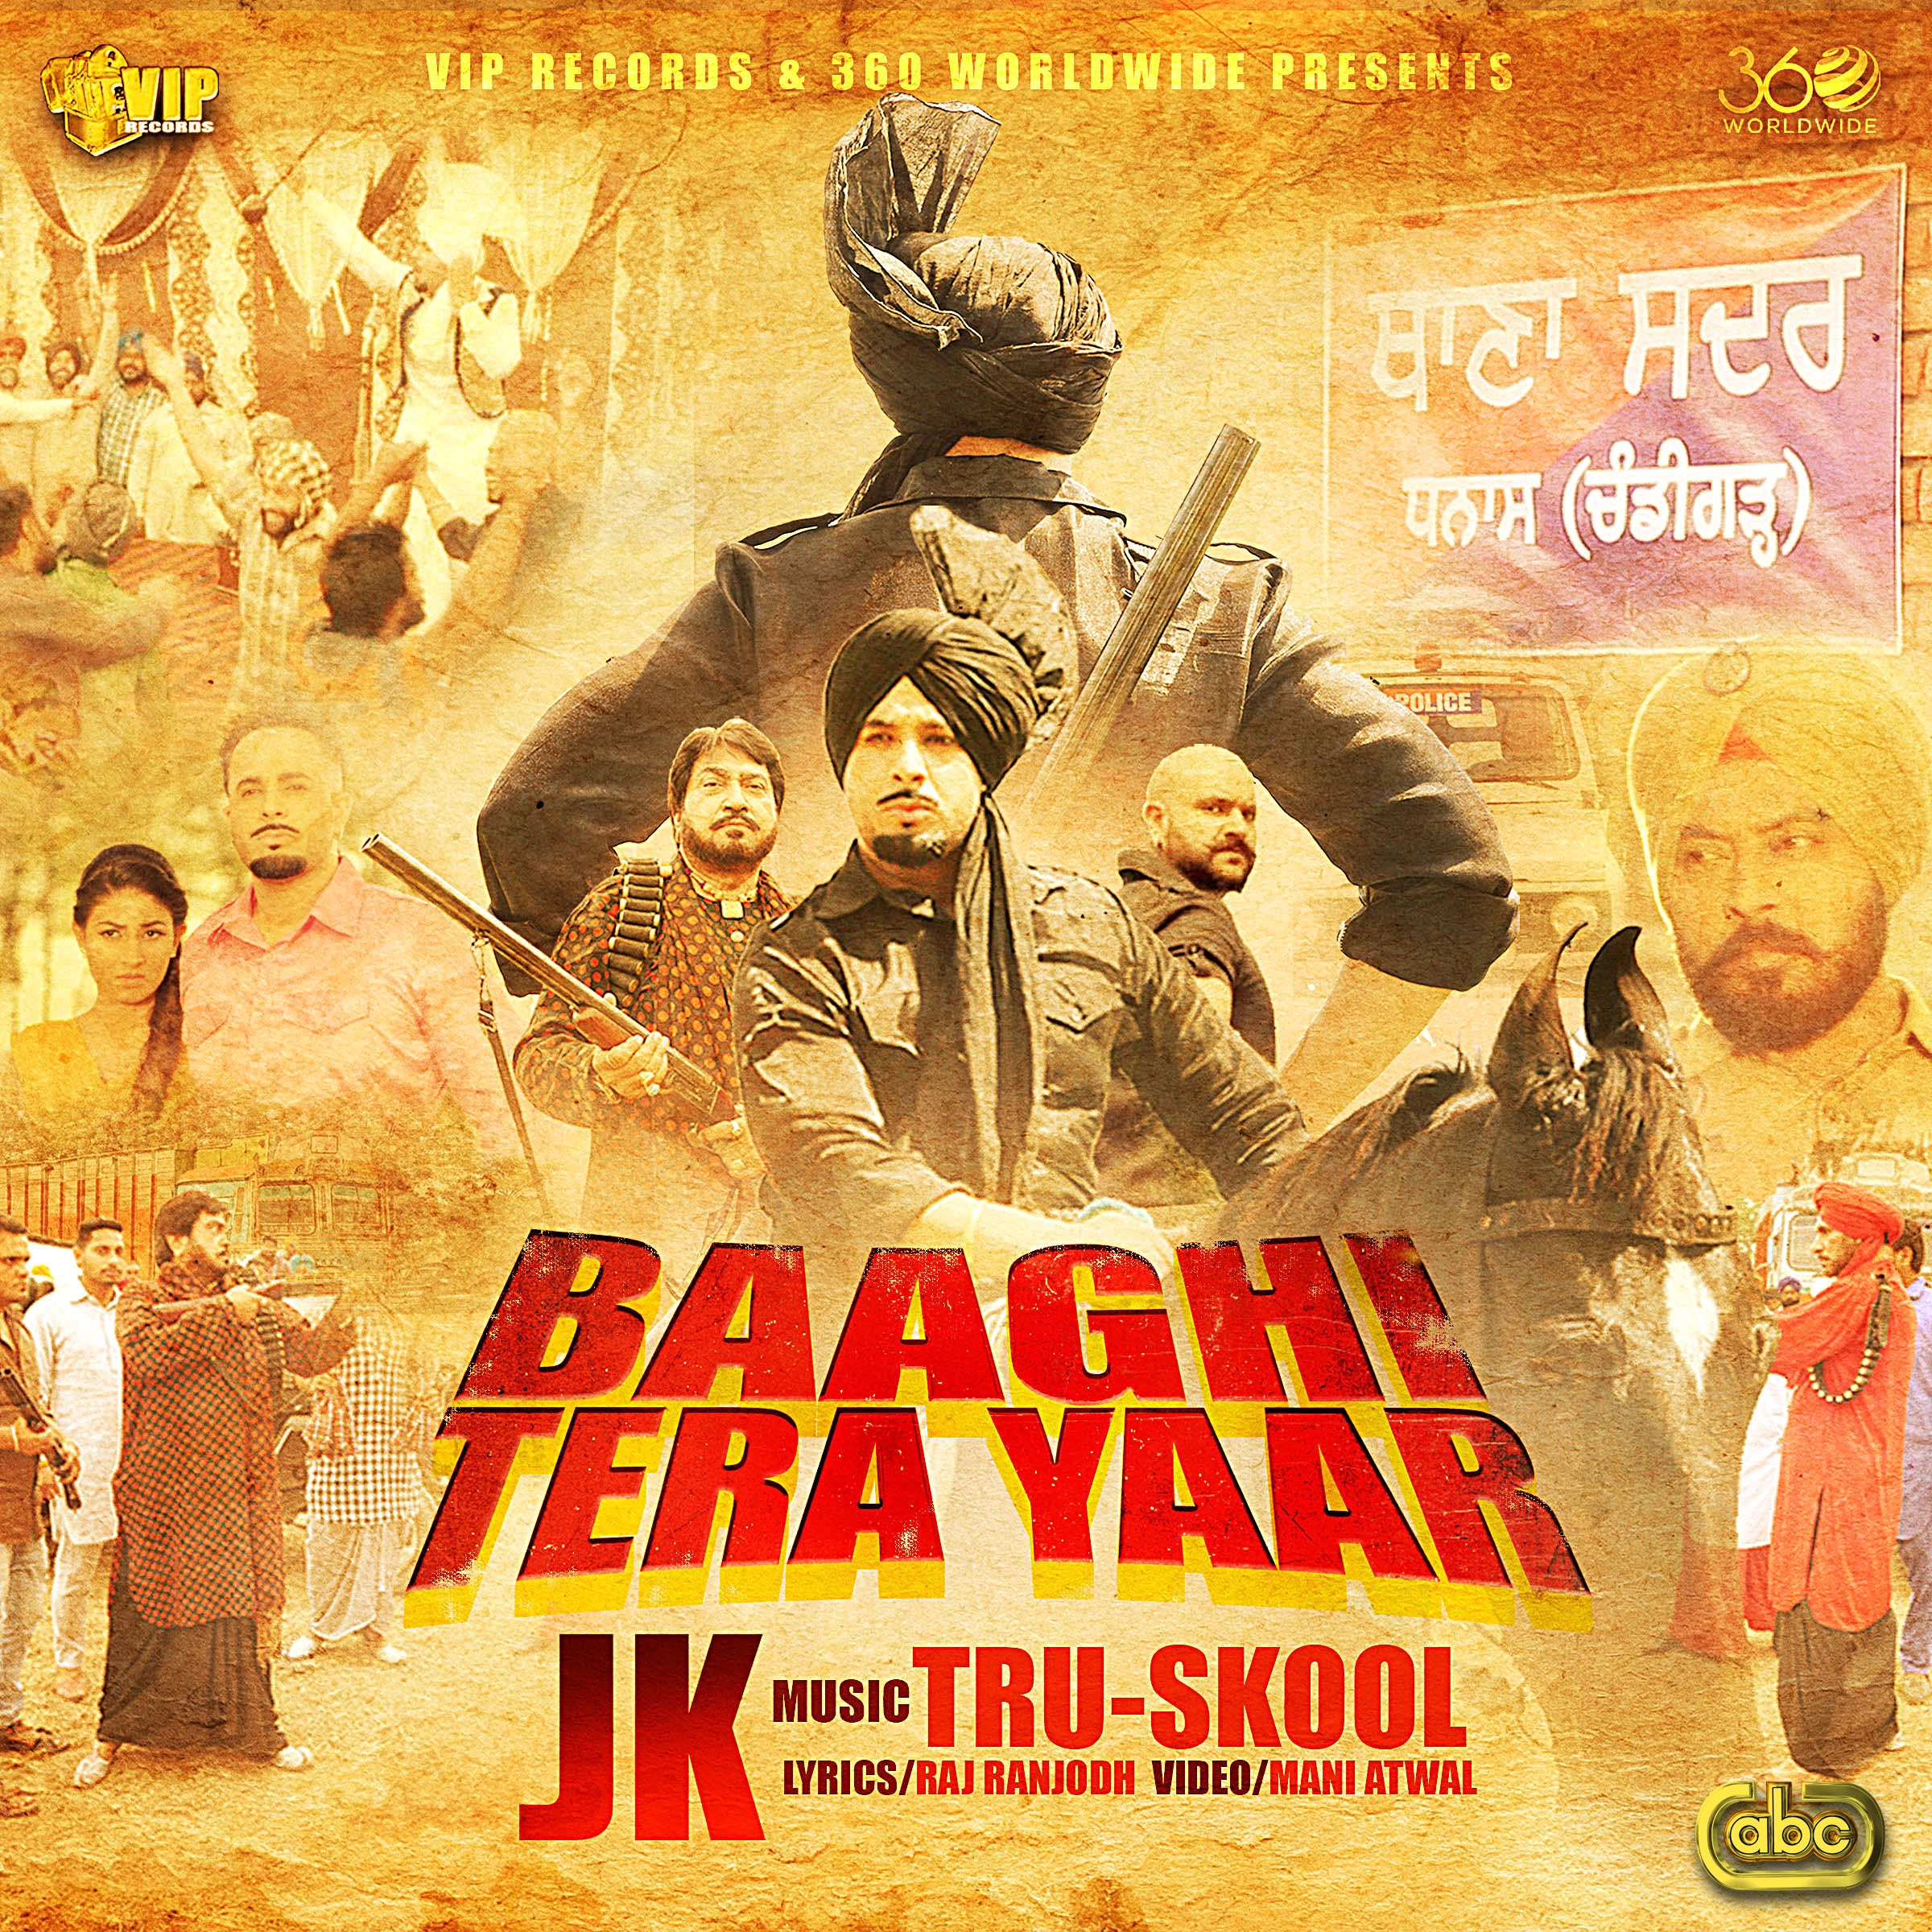 Baaghi Tera Yaar (with Tru-Skool) - Single